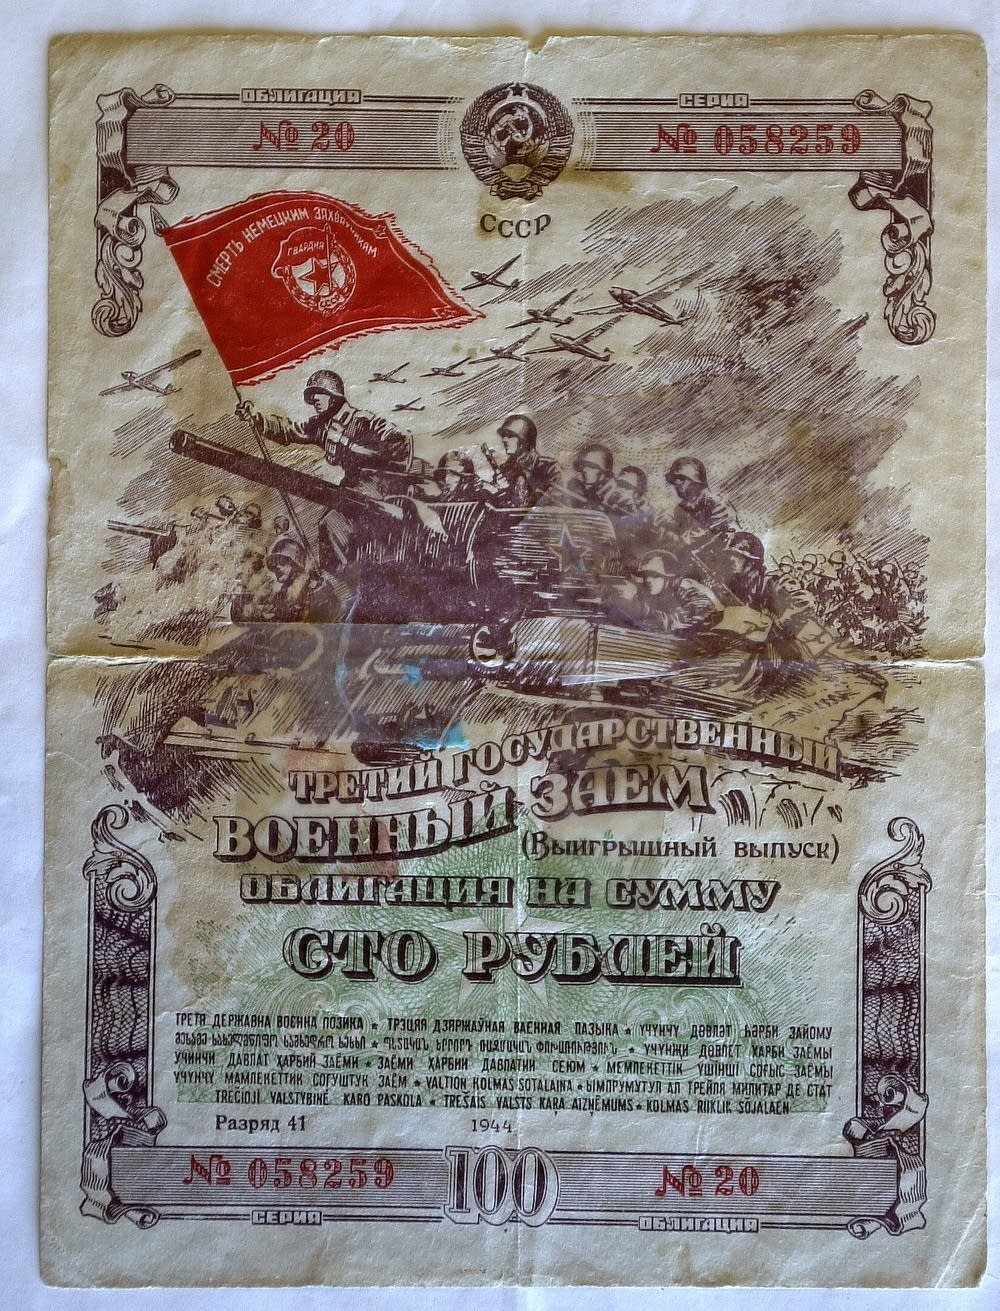 Gurman's Red Army citation